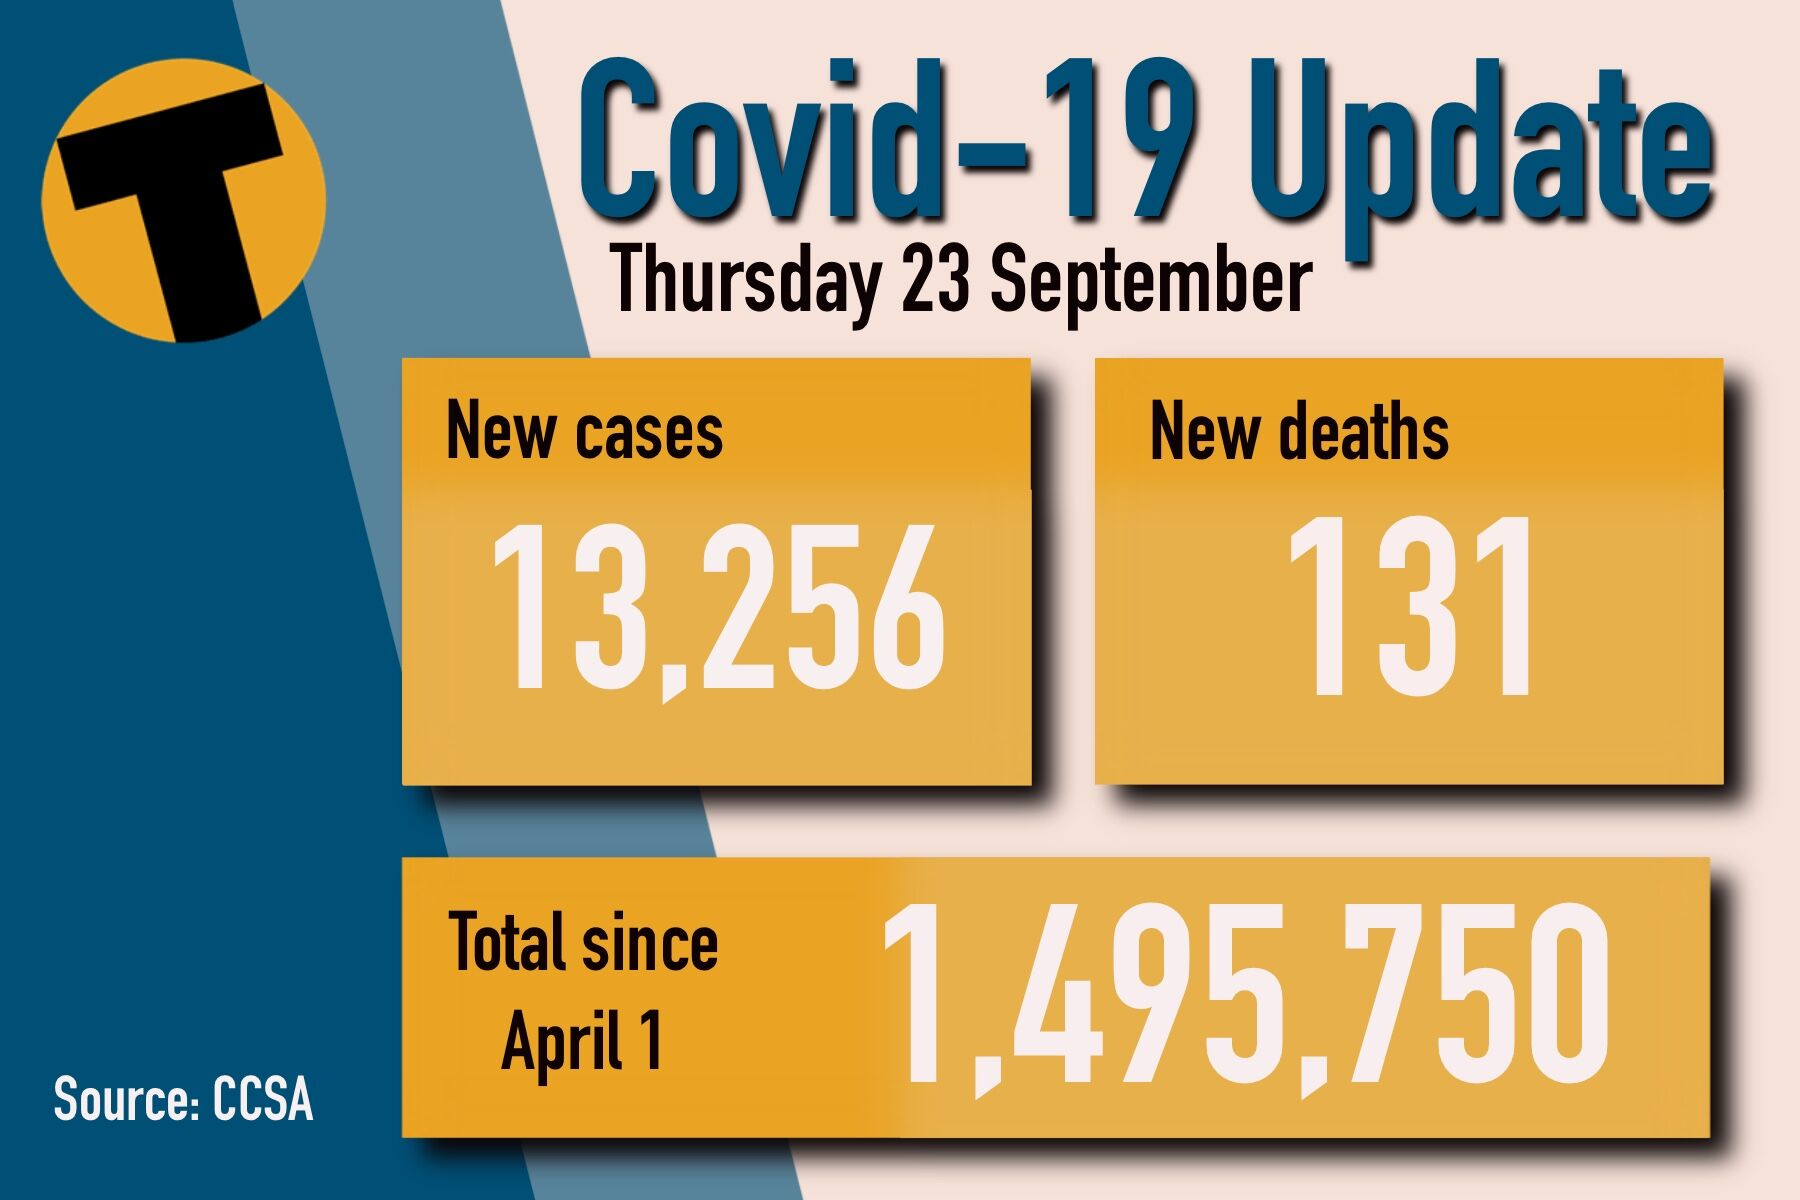 Thursday Covid Update: 131 deaths and 13,256 new cases | News by Thaiger